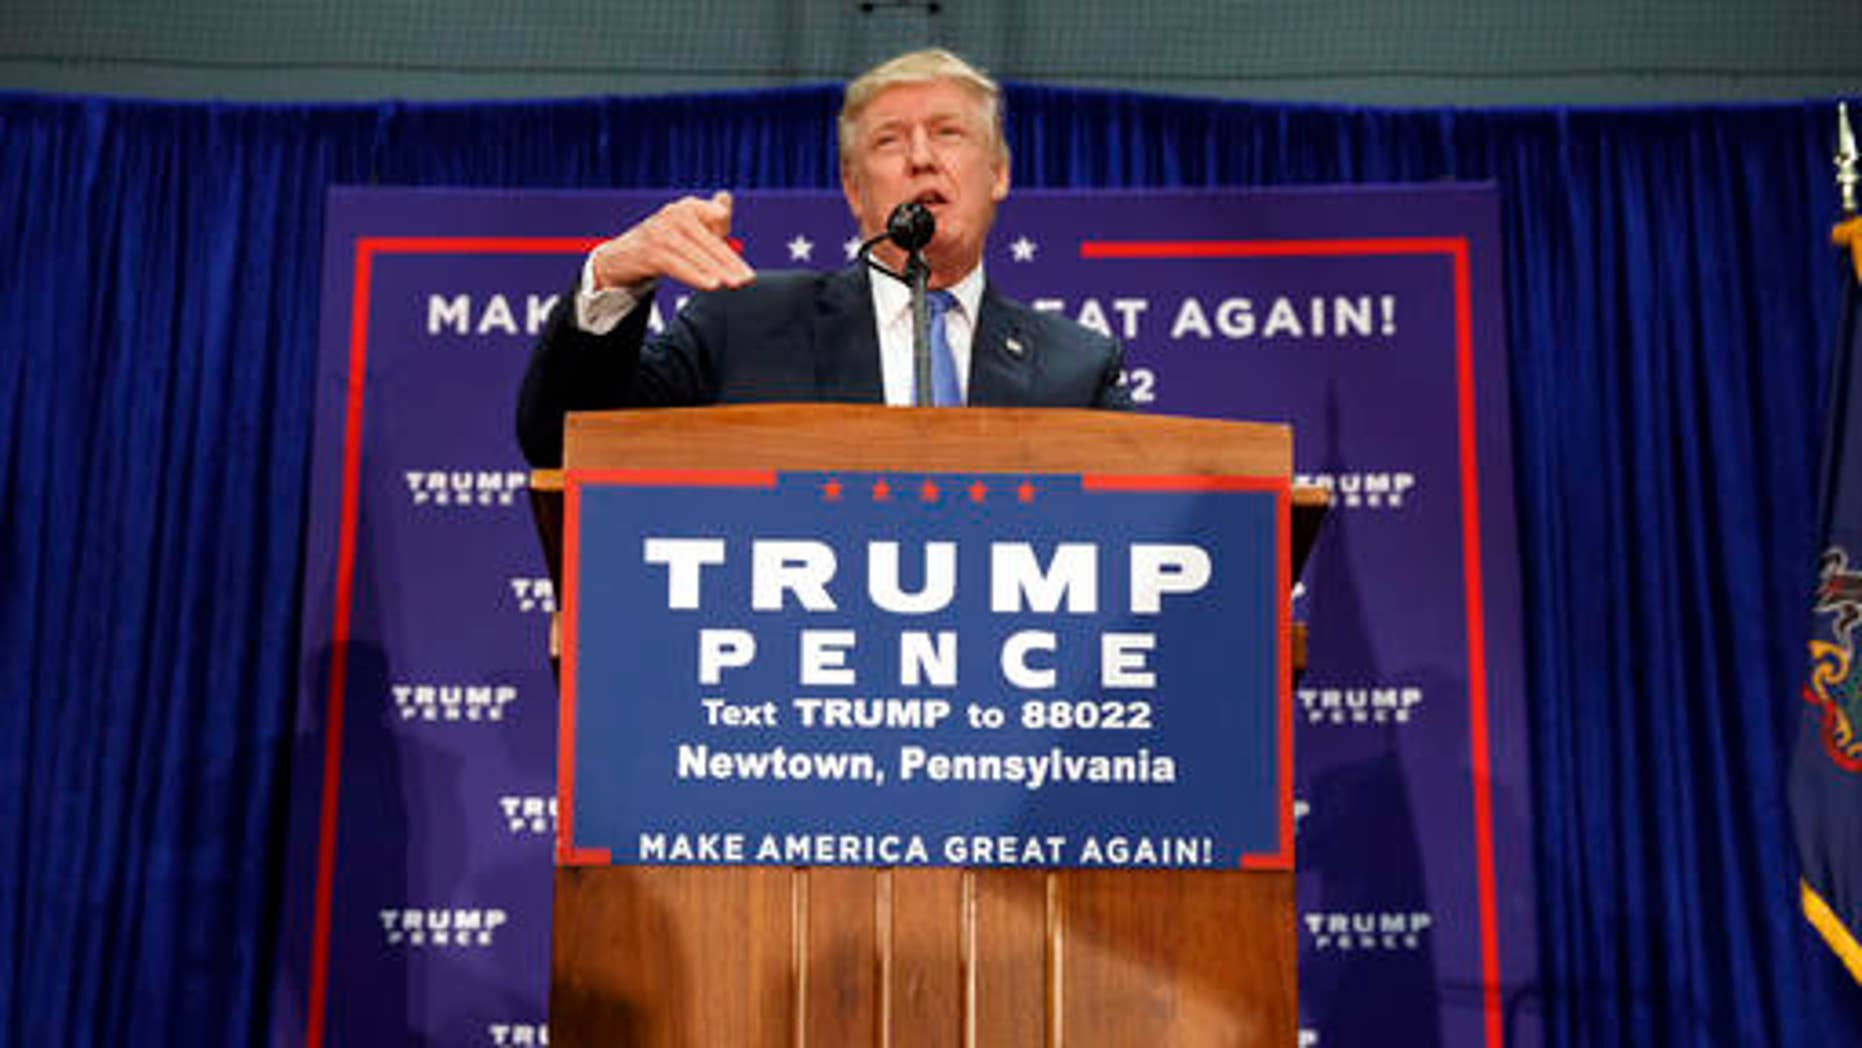 Republican presidential candidate Donald Trump speaks during a campaign rally, Friday, Oct. 21, 2016, in Newtown, Pa. (AP Photo/ Evan Vucci)